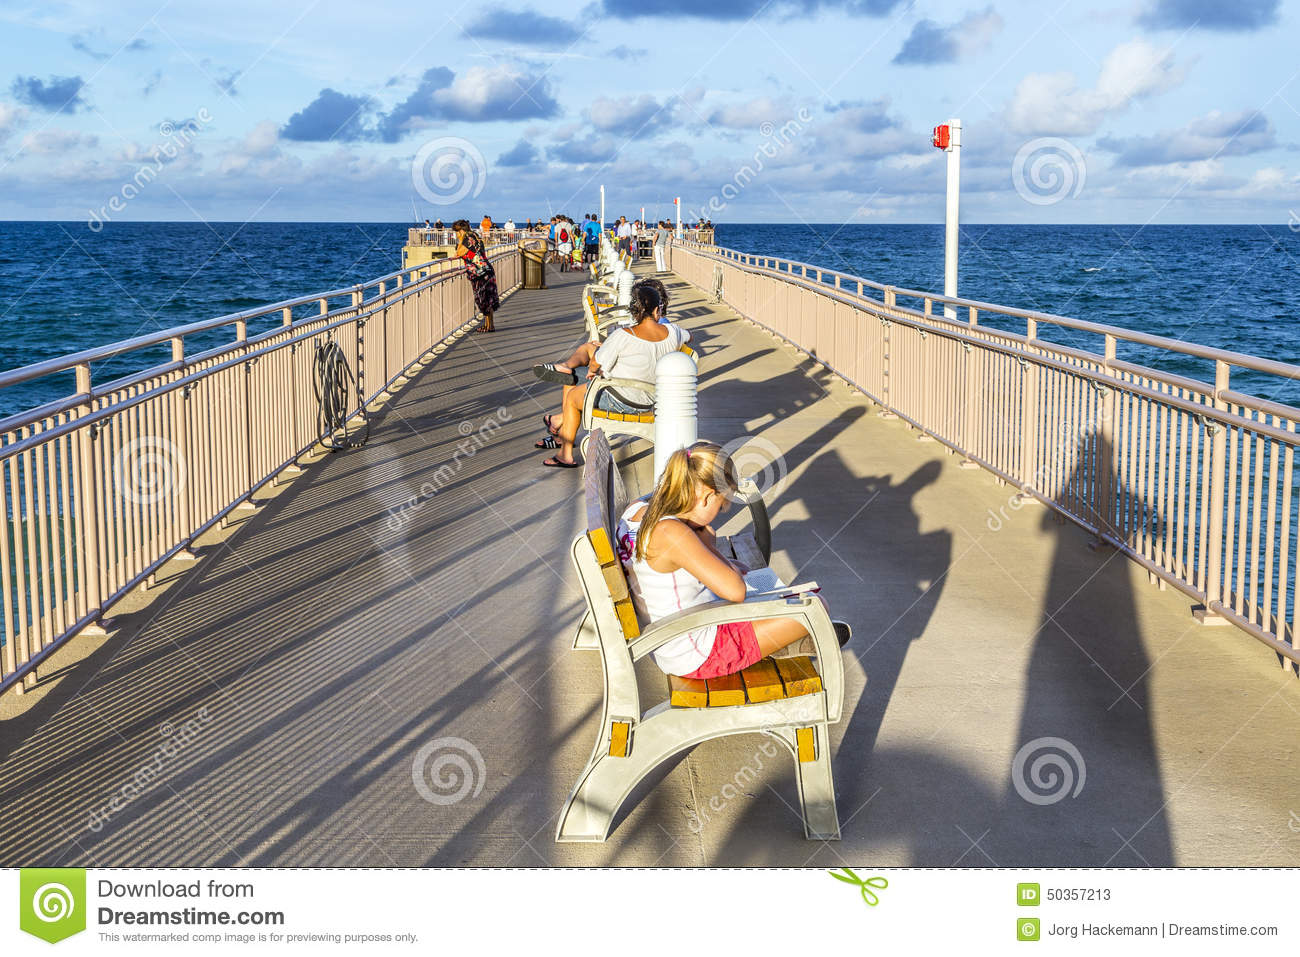 People enjoy the fishing pier in sunny isles beach for Fishing piers in florida